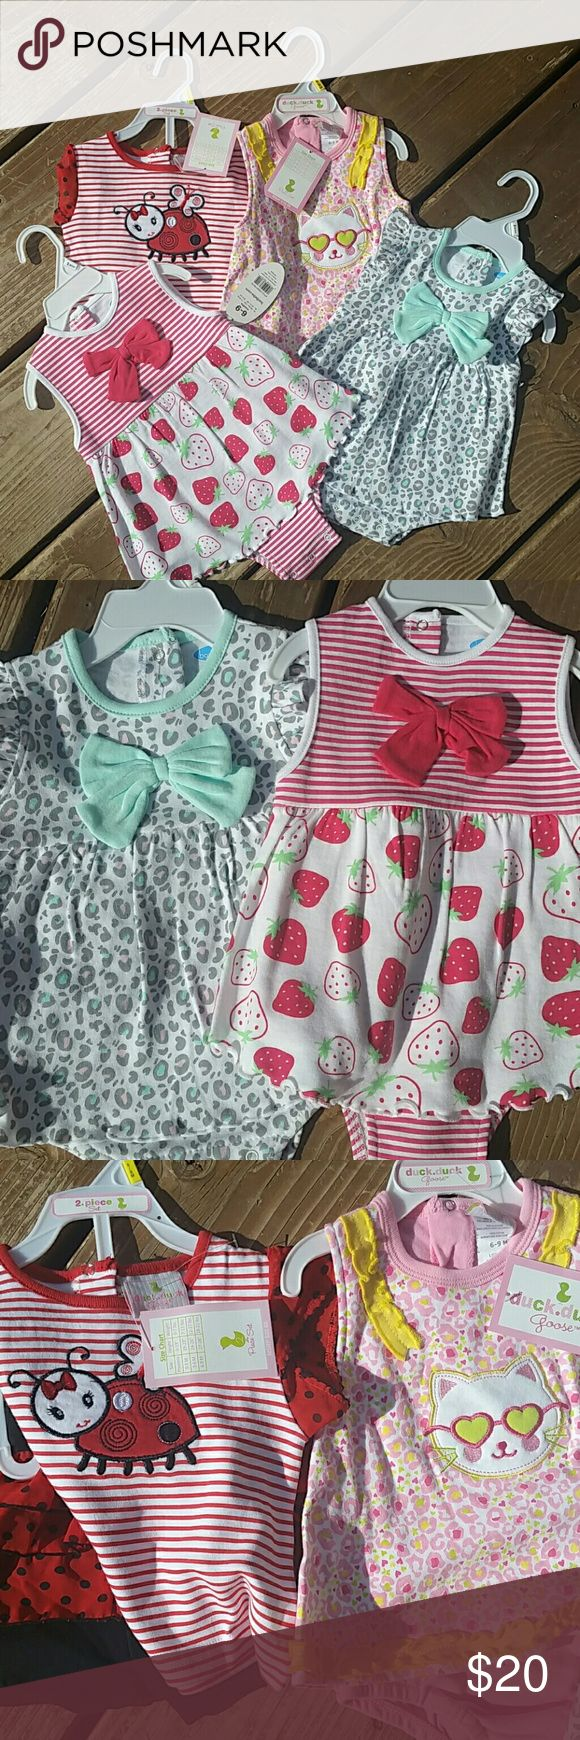 FOUR 6/9M outfits FOUR NWT ((new with tags)) 6/9M outfits. One has cute white and red striped lady bug shirt with red and black polka dot ruffled shorts. One has pink and yellow leopard print kitty cat dress onesie. One is white with gray, pink and blur leopard pattern and a pale blue bow and is also a dress onesie and the last one has strawberry pattern with stripes and is a dress onesie. Break it down, that's only 3 dollars per outfit and if you don't think that's a fair price, send me an…